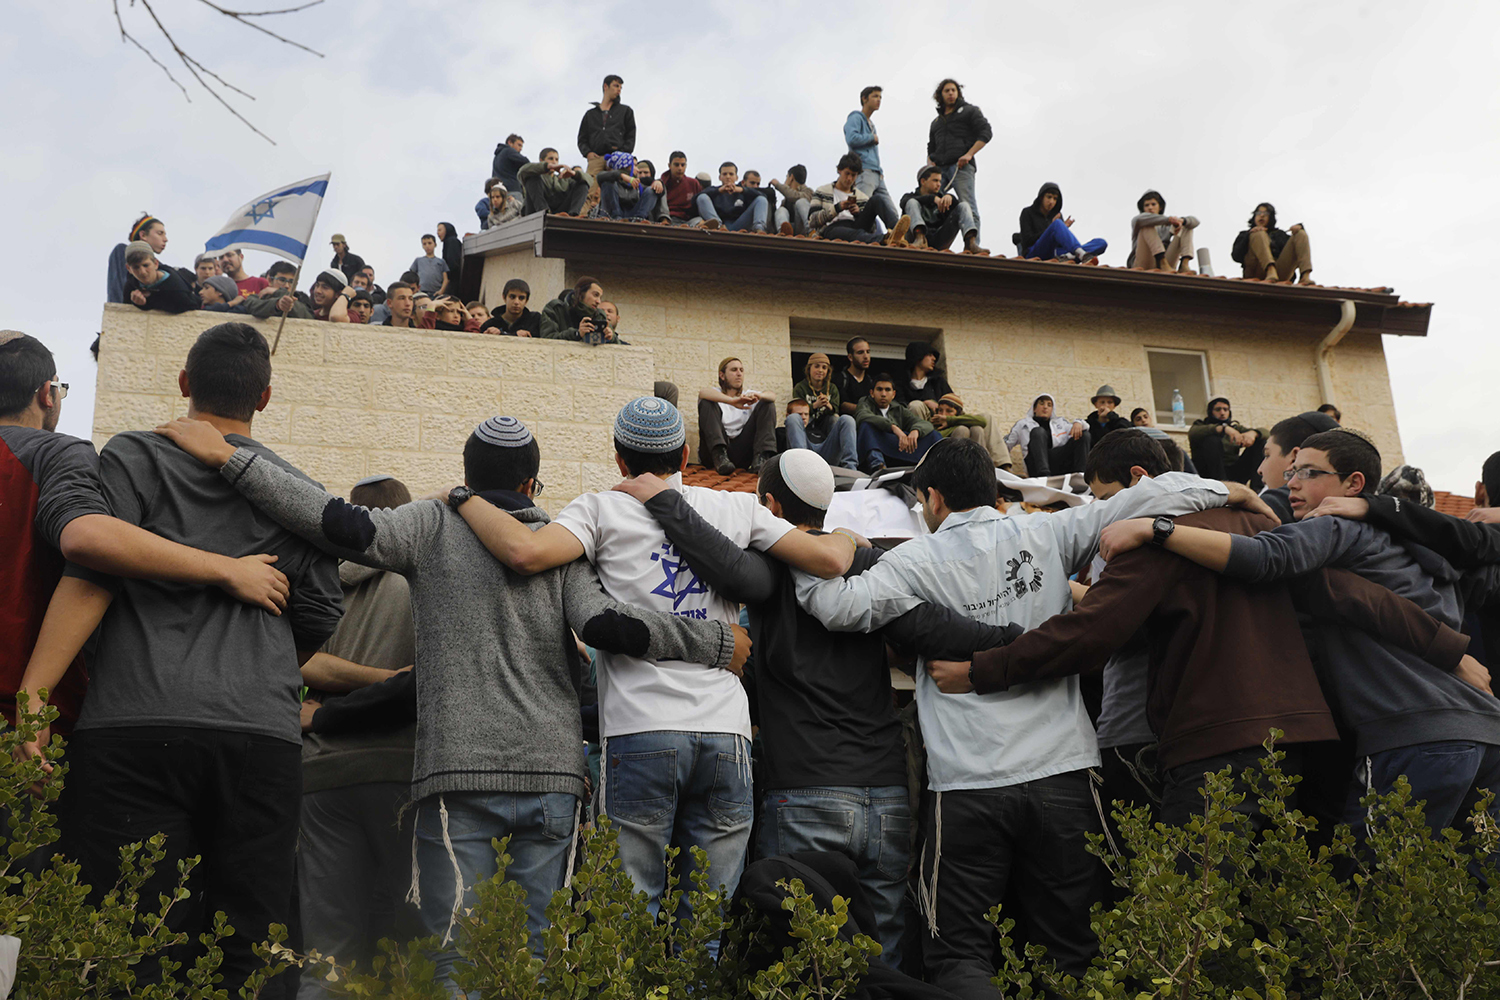 TOPSHOT - Israeli youths supporters of settlements surround and sit on a rooftop of a house which is due to be emptied and demolished in the settlement of Ofra in the occupied West Bank, during an operation by Israeli forces to evict the houses, on February 28, 2017. Nine homes in the Ofra settlement were found to have been built on private Palestinian land and the Israeli supreme court ordered them razed by March 5, rejecting last minute petitions to delay the demolition or have the buildings sealed instead. / AFP PHOTO / MENAHEM KAHANA / TT / kod 444